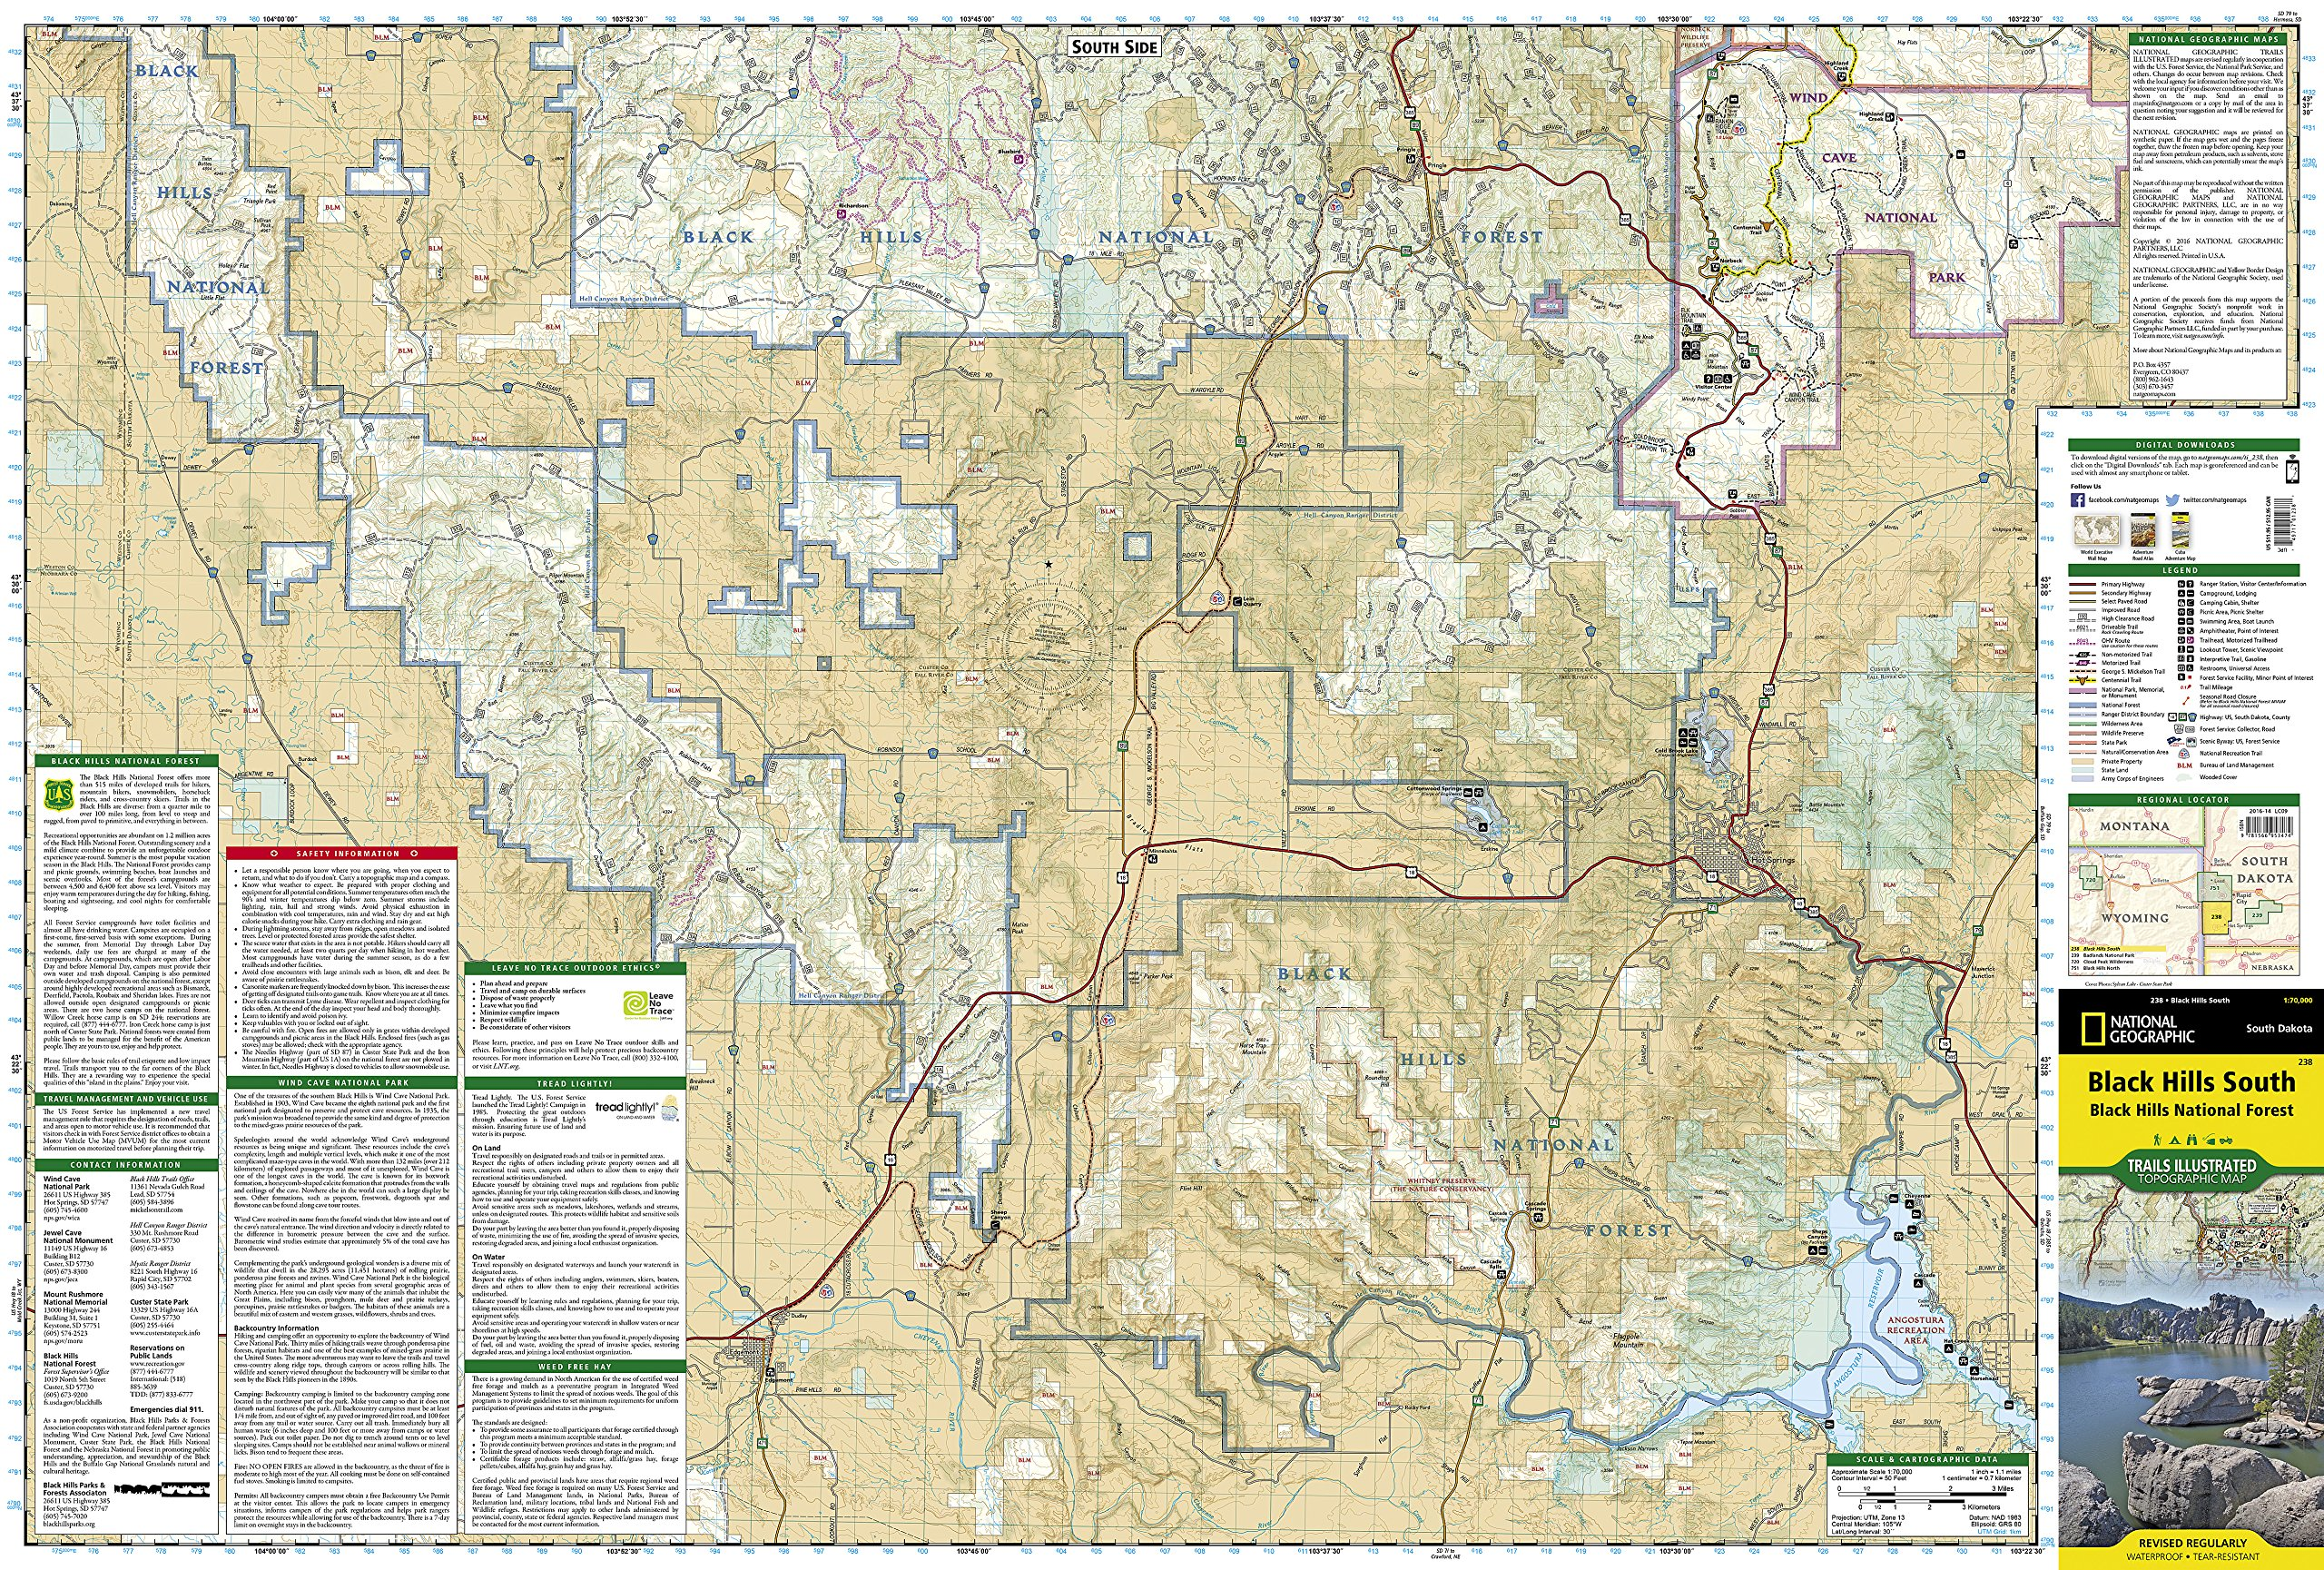 grand teton national park map html with Badlands National Park Map on Carduus Nutans1 l moreover Grand Canyon Waterfalls Falls n 5537451 as well 795367 Tetons Wyoming together with Fishing as well Red Paintbrush l.